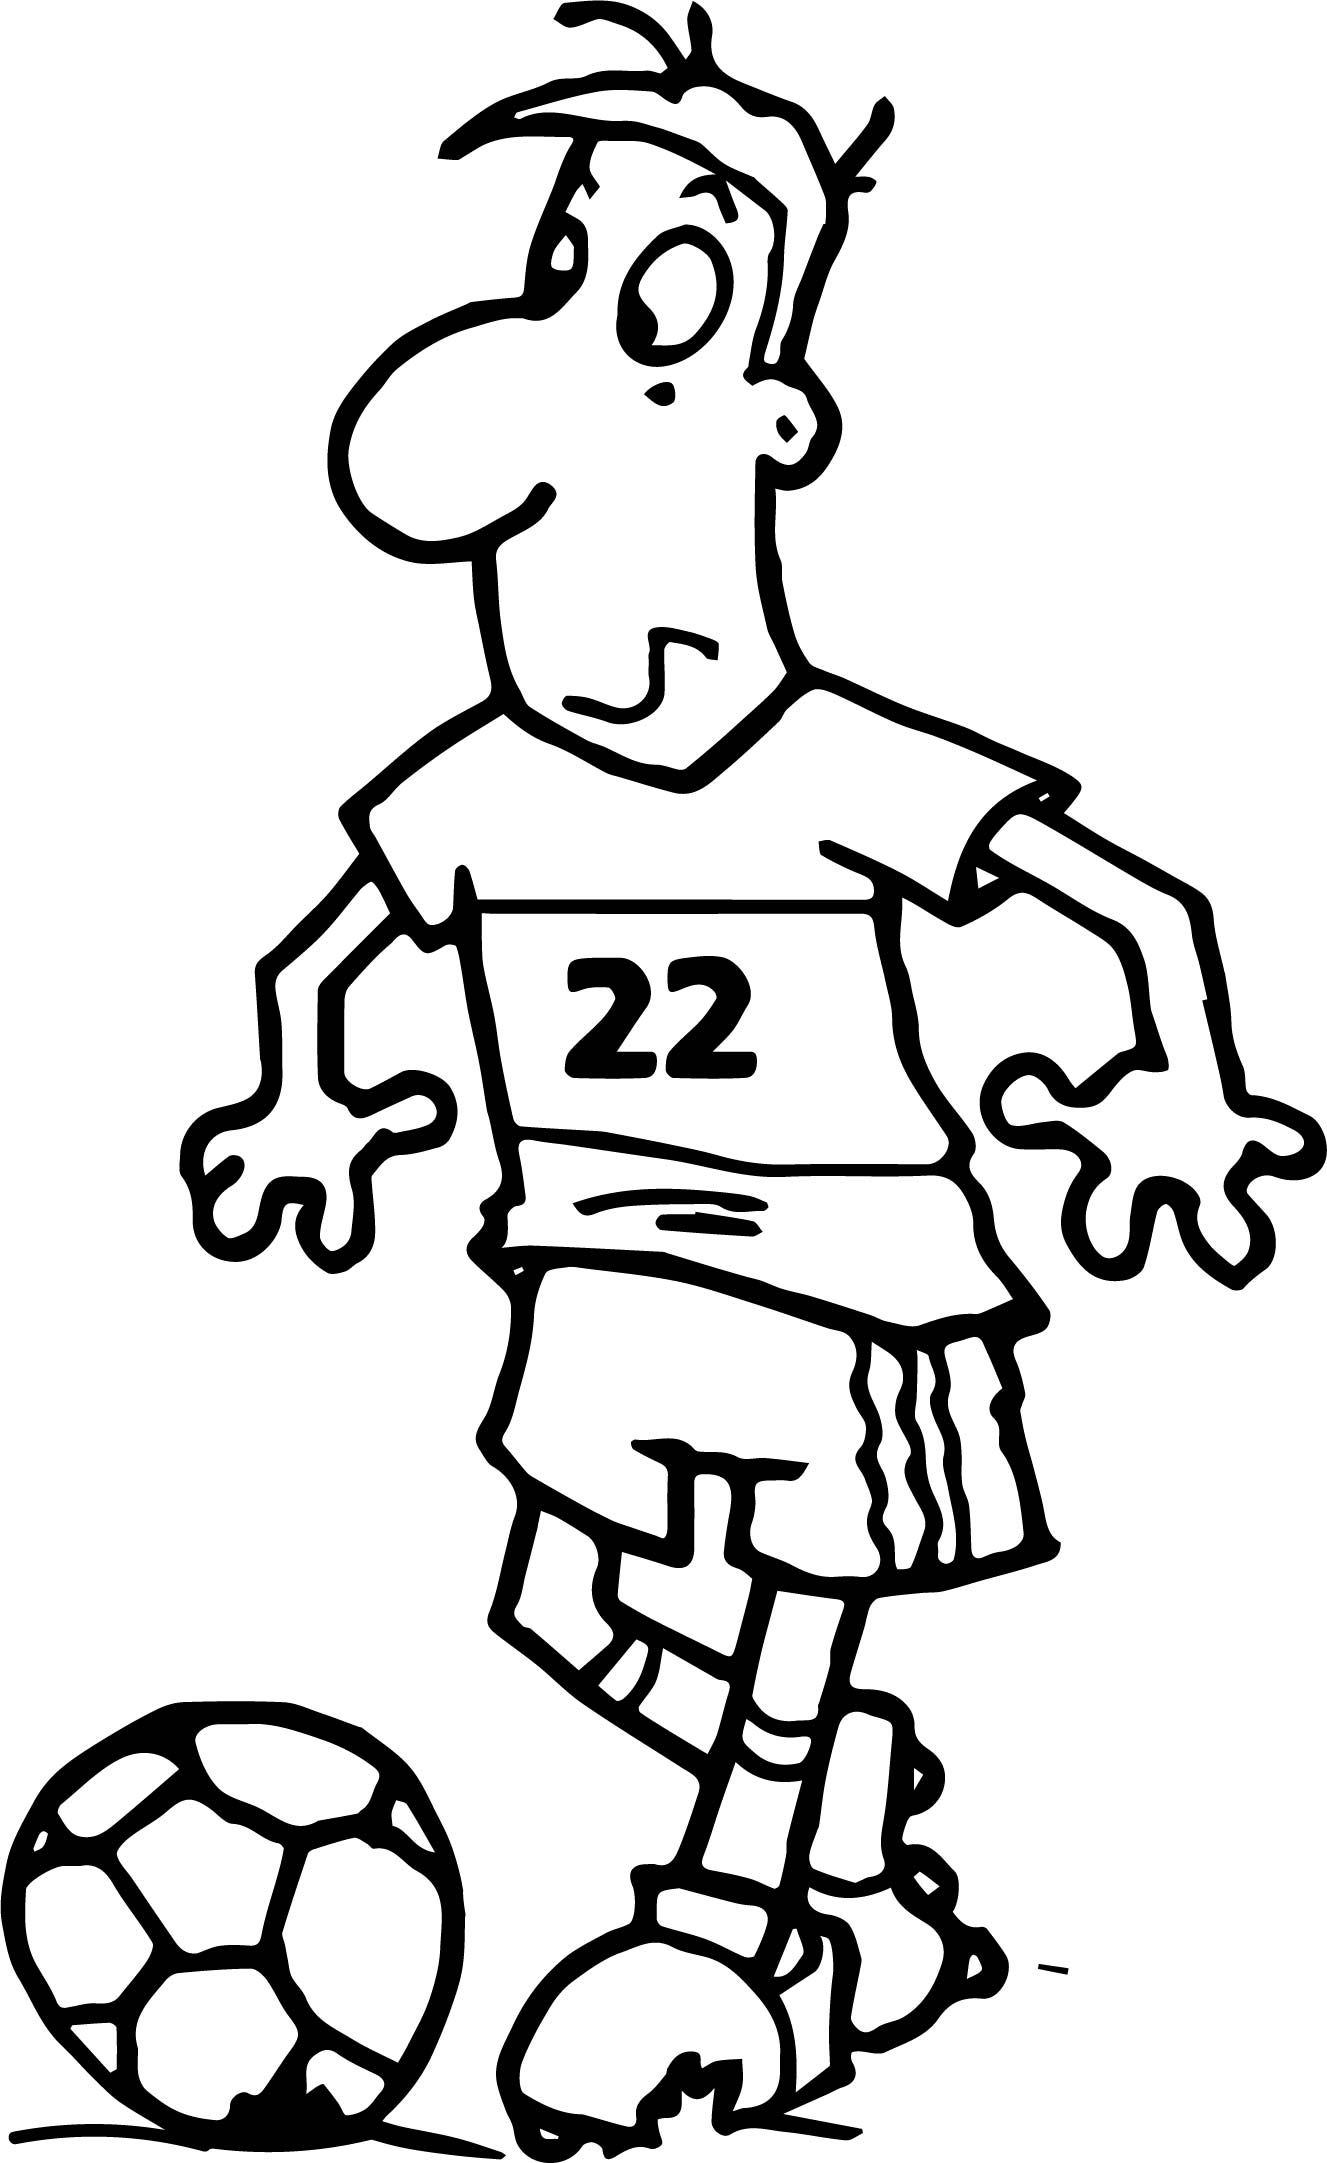 Soccer Coloring Pages For Kids To Develop Their Fine Motor And